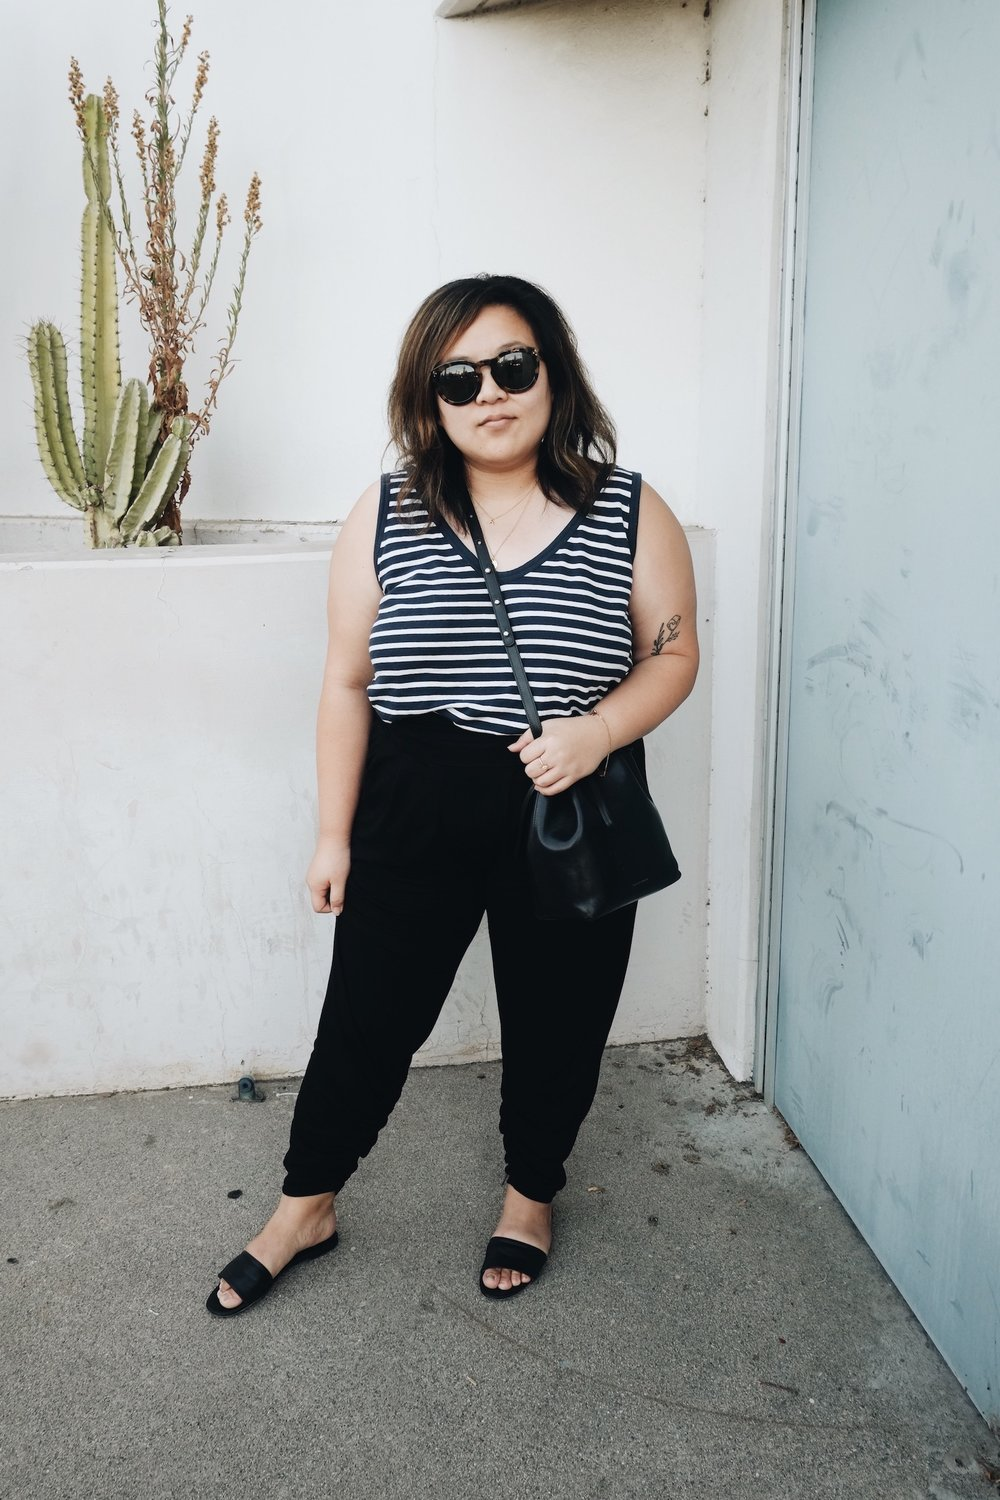 Simple minimalist style // A Week Of Minimalist Uniform Outfits With Jasmine Hwang From The Pleb Life on The Good Trade